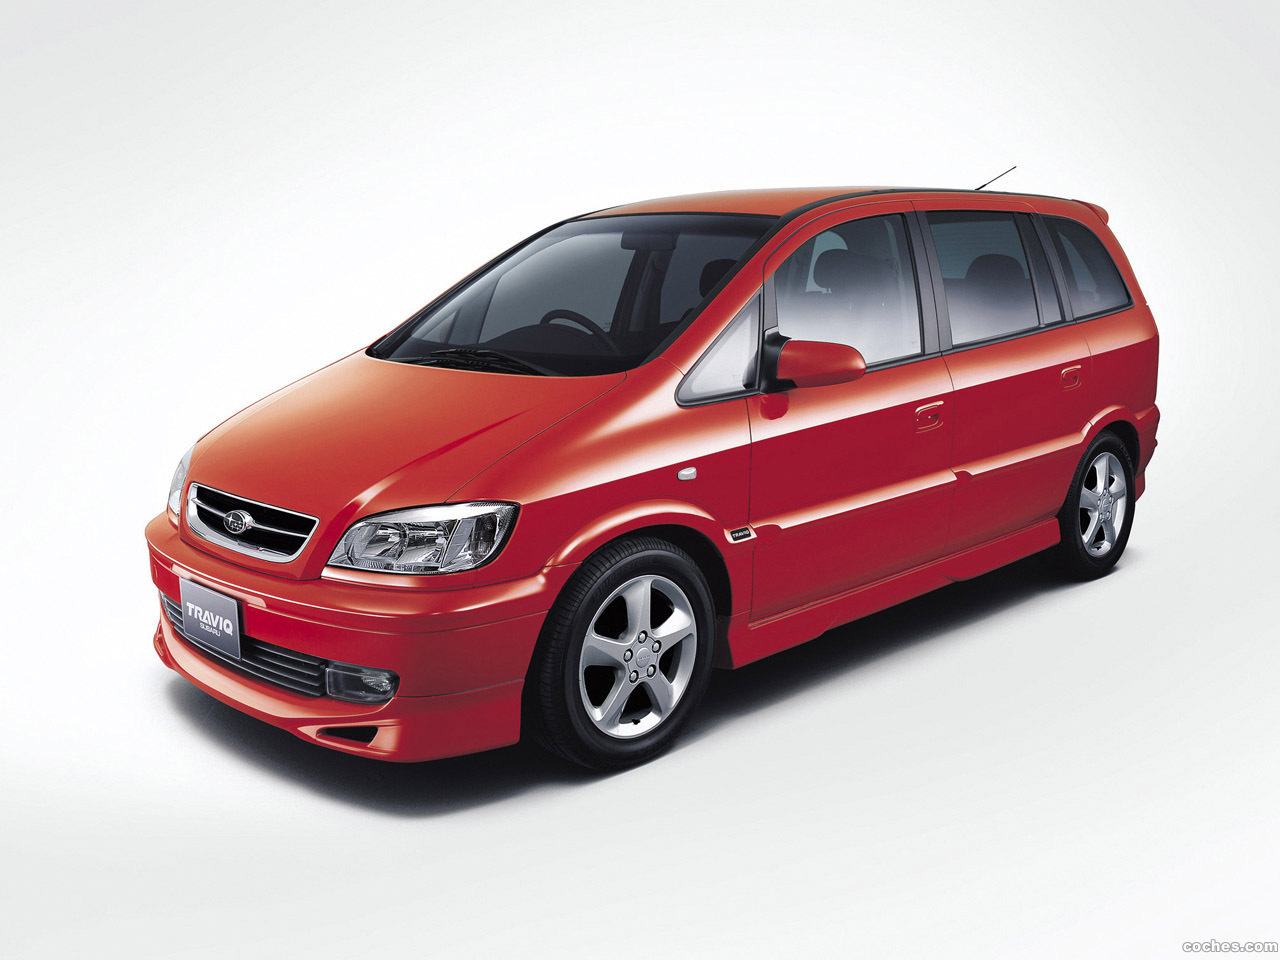 Foto 3 de Subaru Traviq S Package 2001